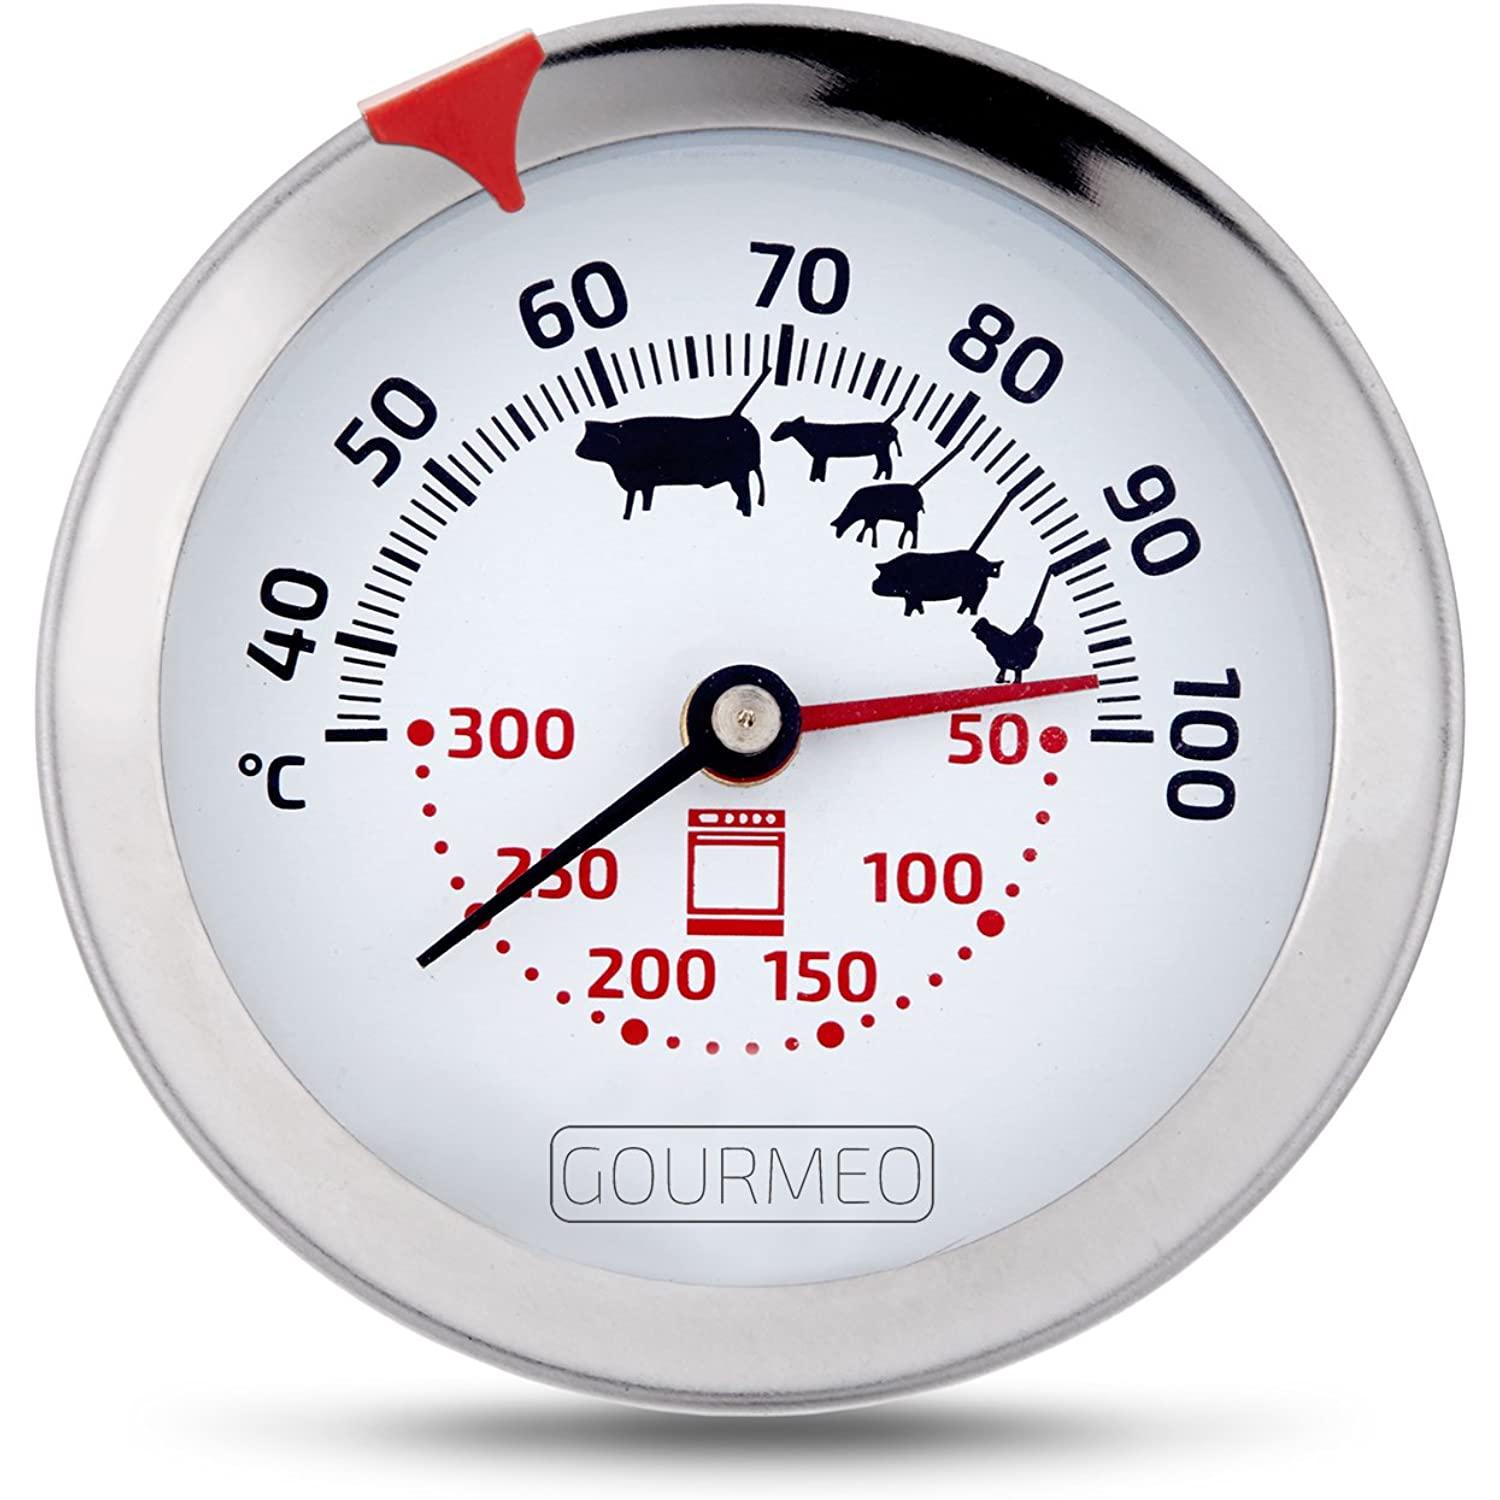 GOURMEO Ofenthermometer